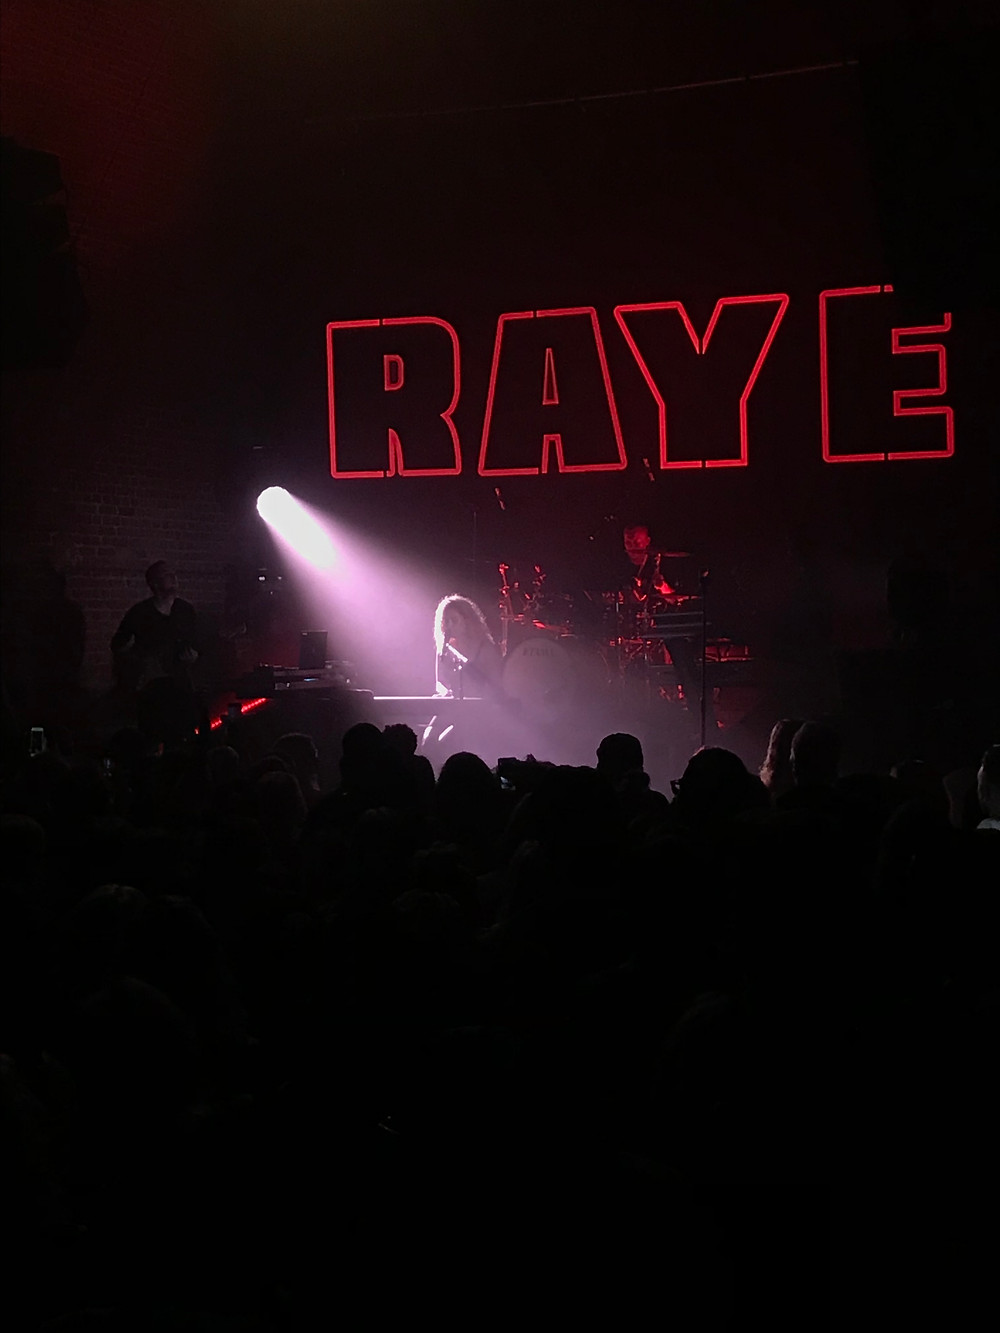 Woman, RAYE singing at concert